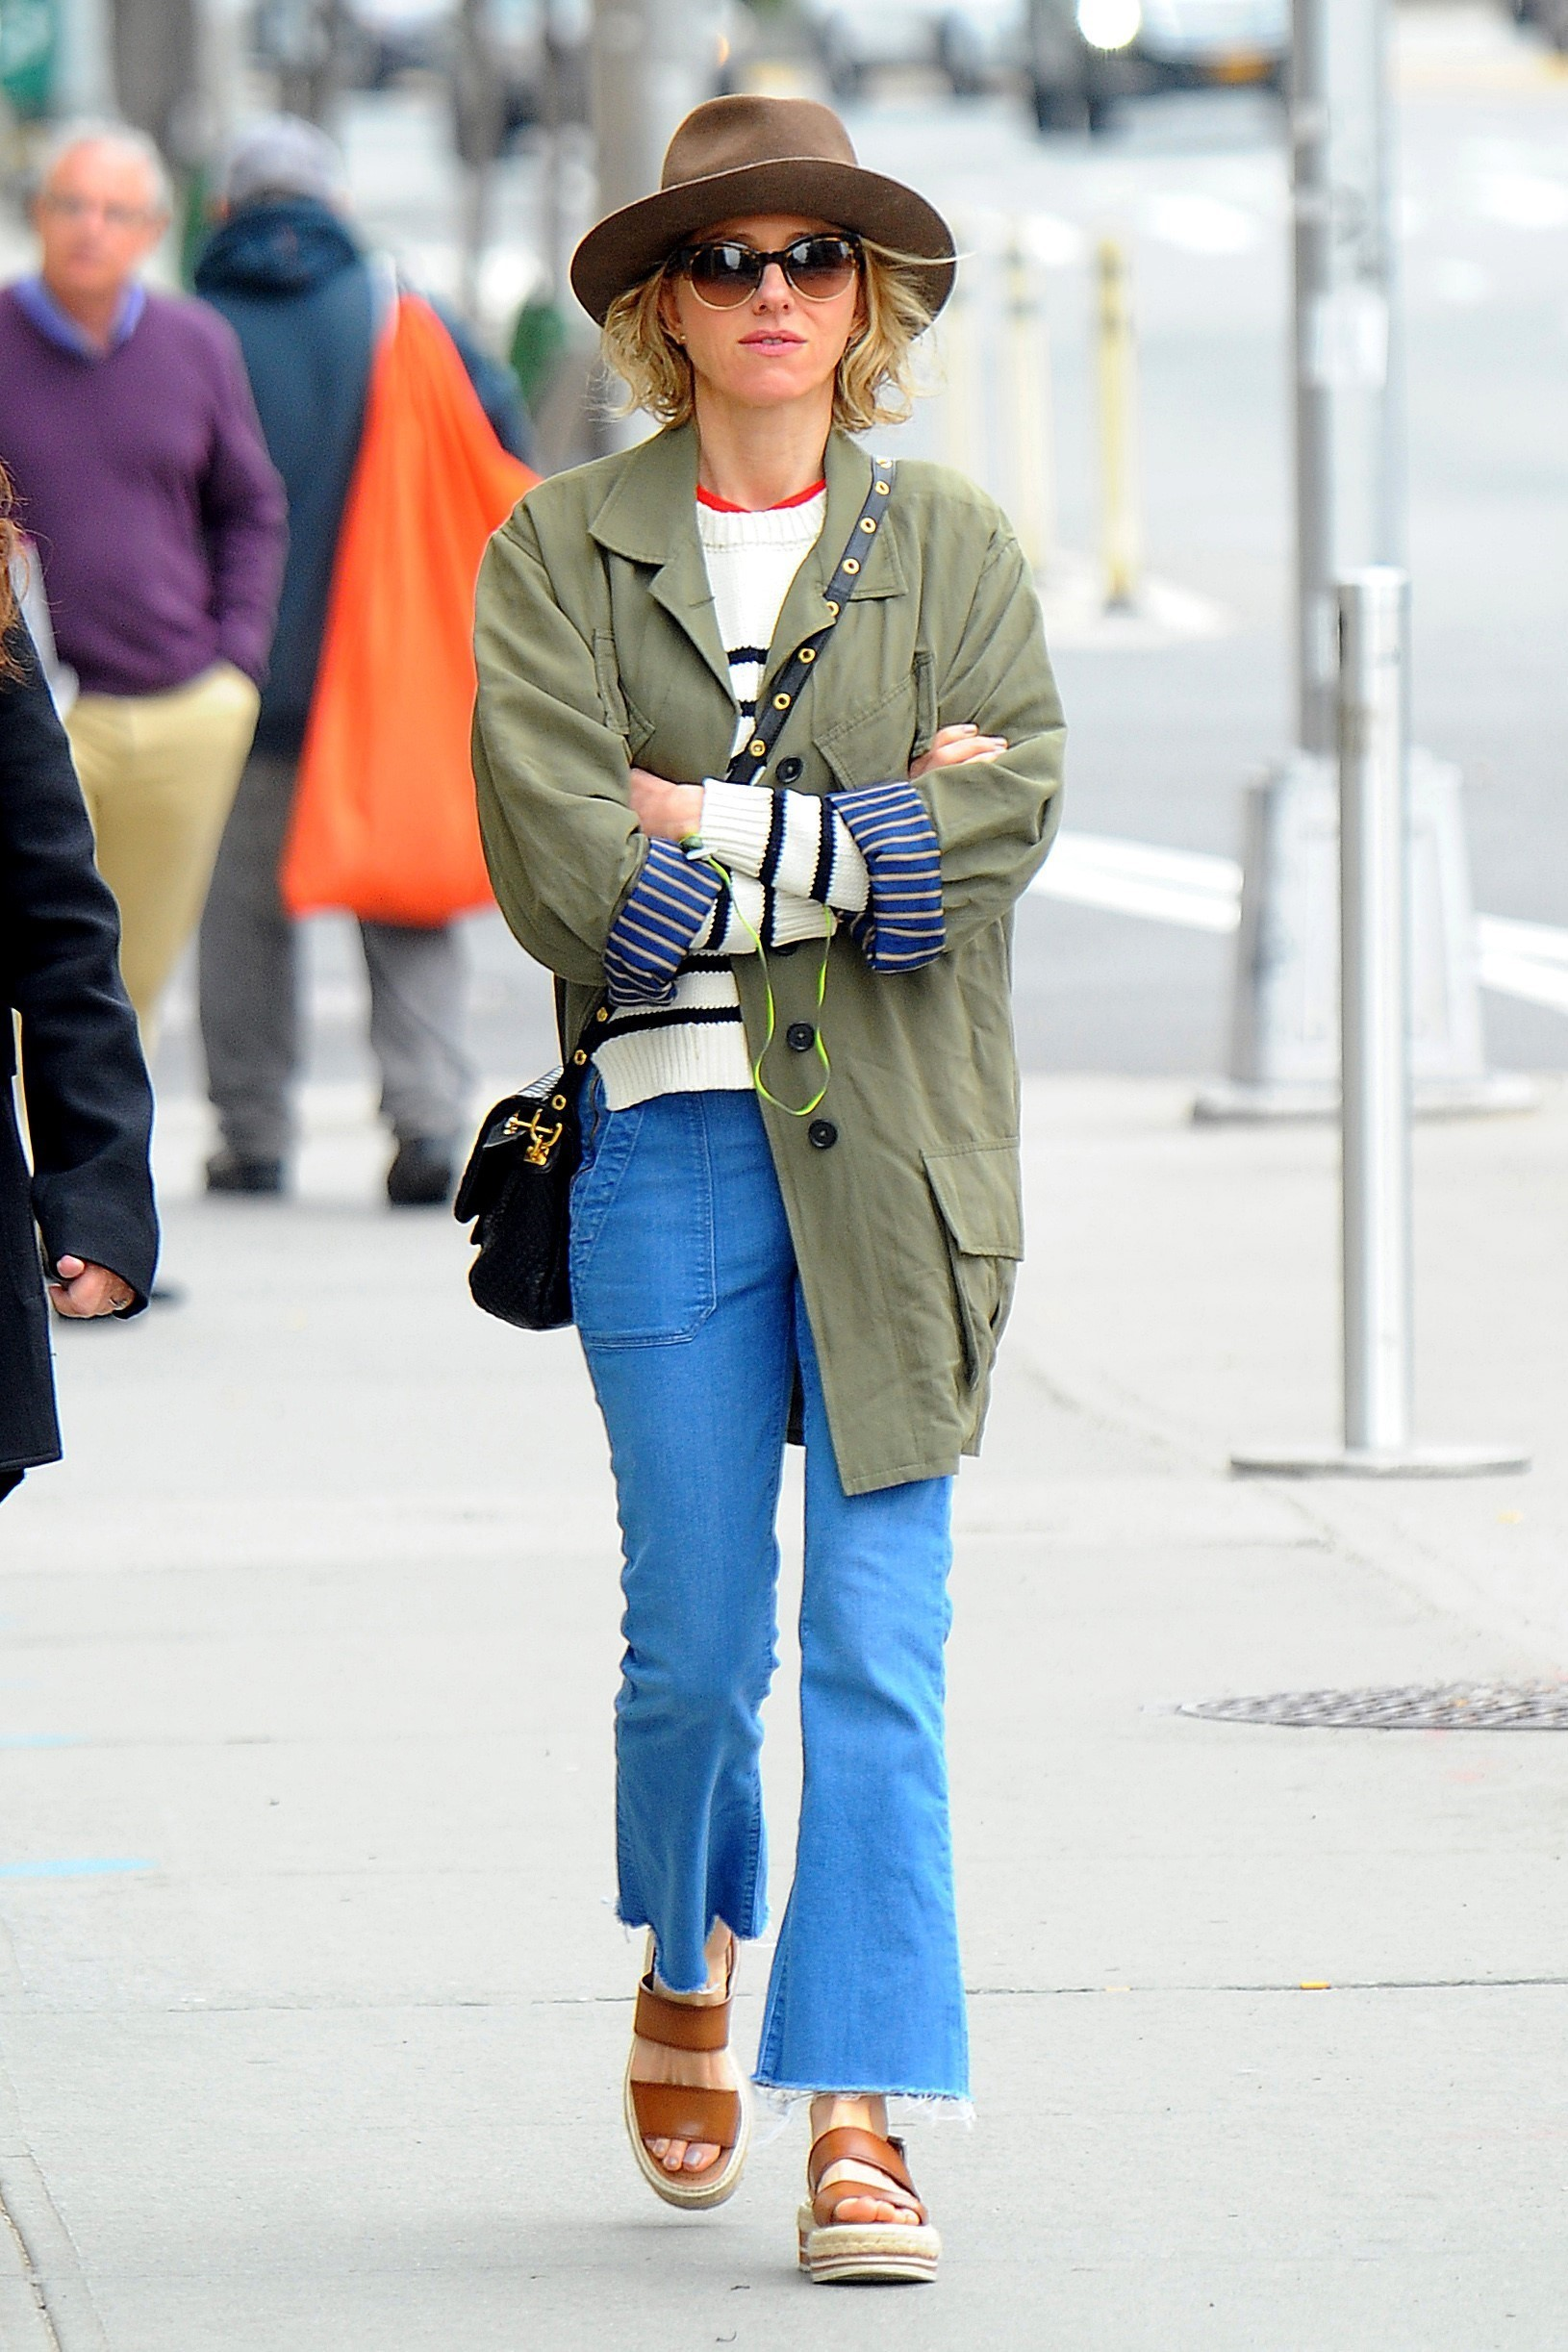 AG_827737 - *EXCLUSIVE* New York, NY  - Actress Naomi Watts takes a stroll through the streets of New York wearing a brown fedora and trendy green field jacket with her new Spring favorite, Prada Double-Band Espadrille Platform Sandals.  Naomi appeared to be in deep thought while making her way back home.  Pictured: Naomi Watts  24 APRIL 2017, Image: 330134113, License: Rights-managed, Restrictions: , Model Release: no, Credit line: JosiahW / Backgrid USA / Profimedia